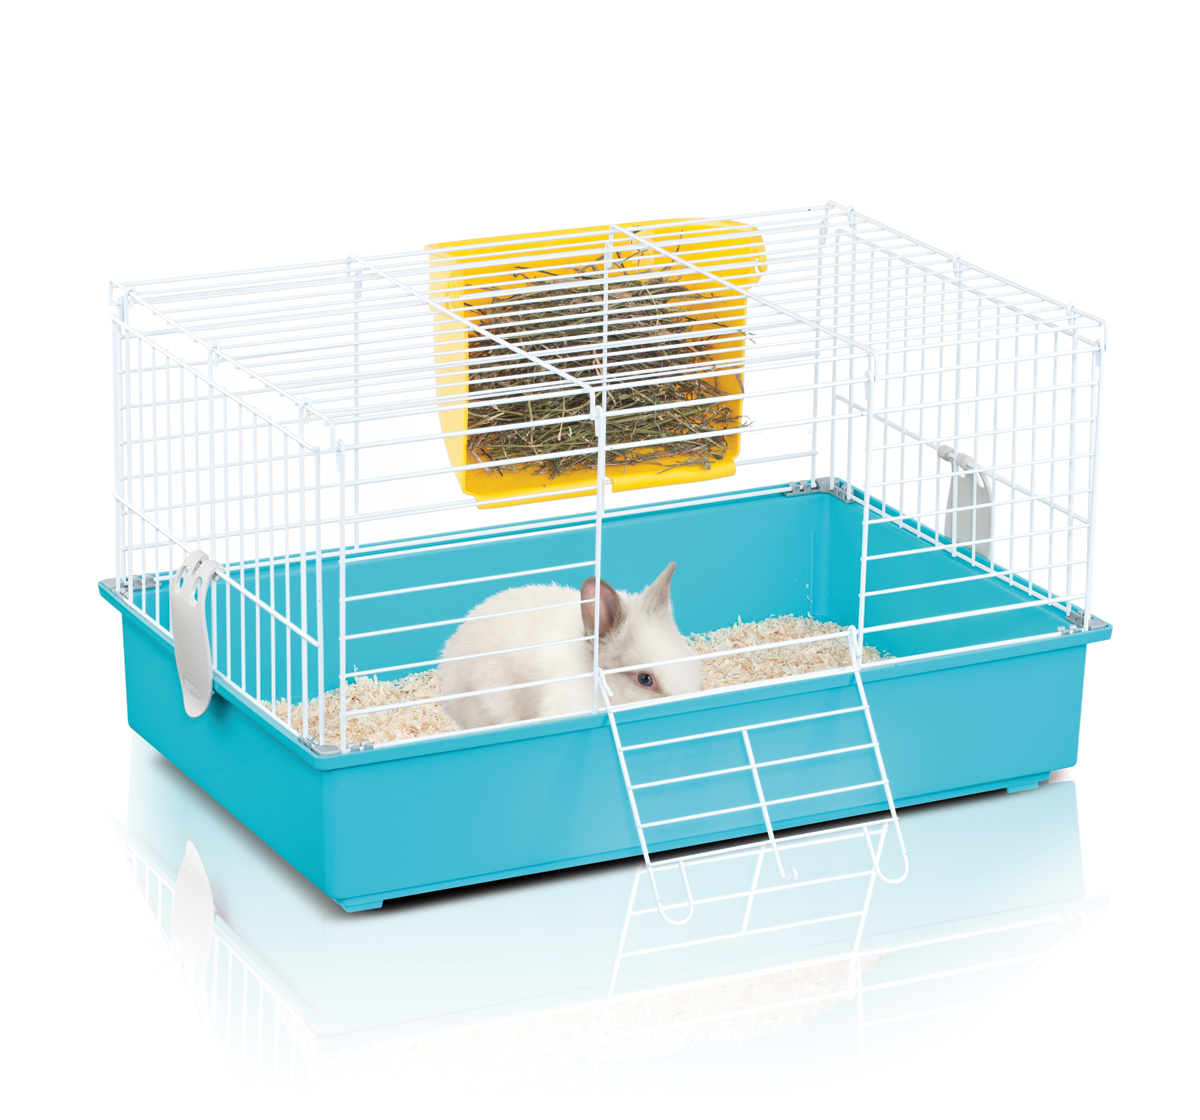 Imac cavia 3 guinea pig rabbit cage lxwxh 24x16x14 for Small guinea pig cages for sale